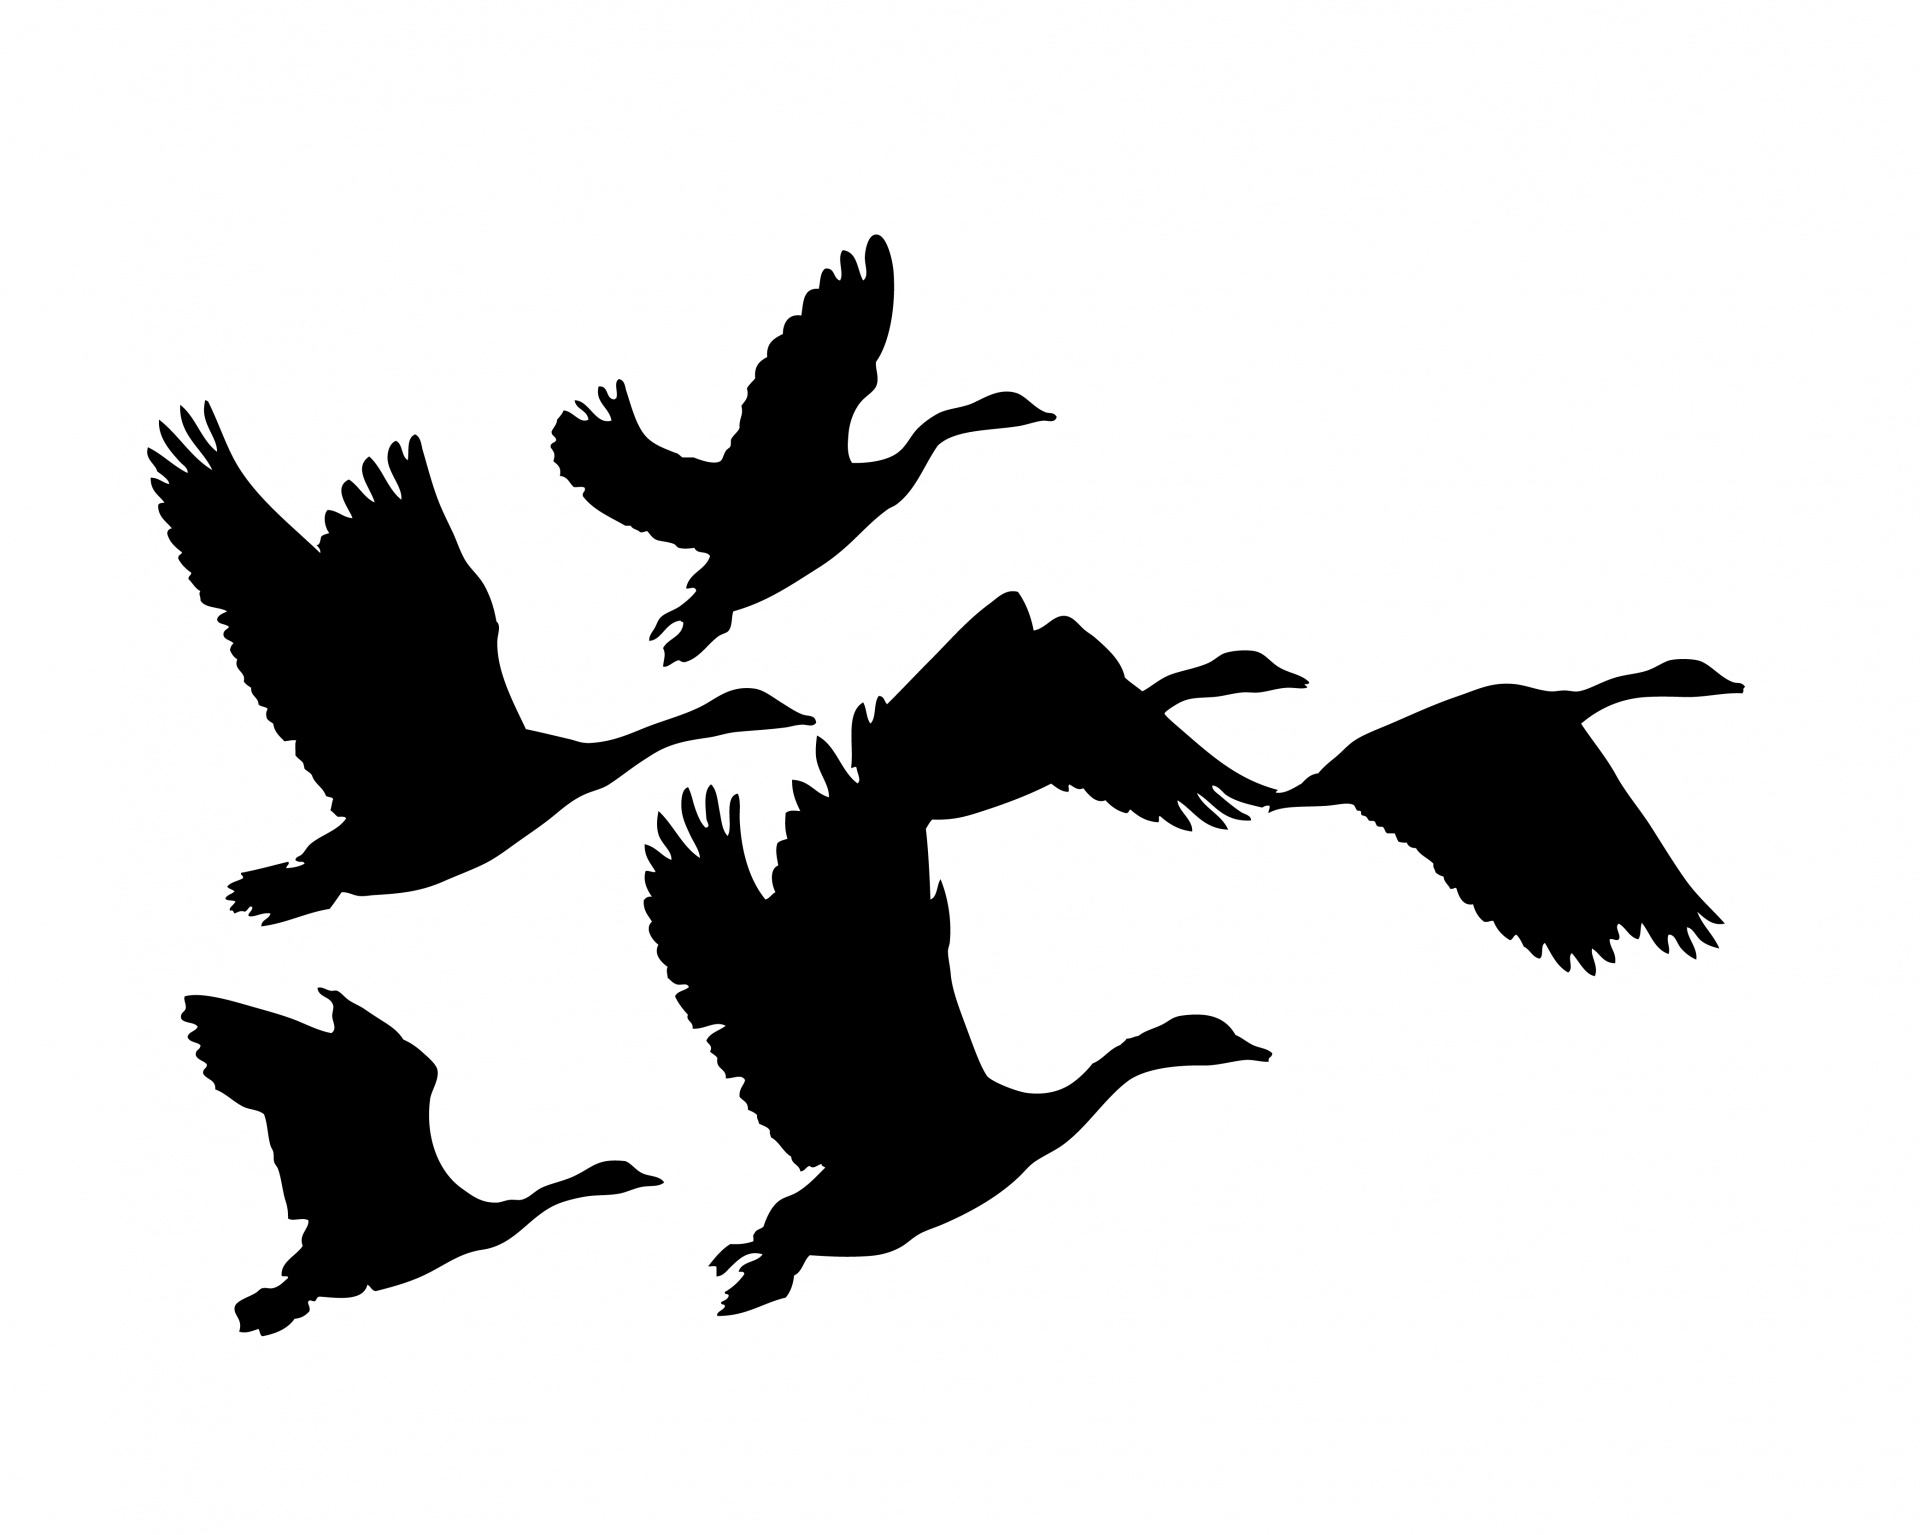 1920x1535 Geese Flying Silhouette Free Stock Photo